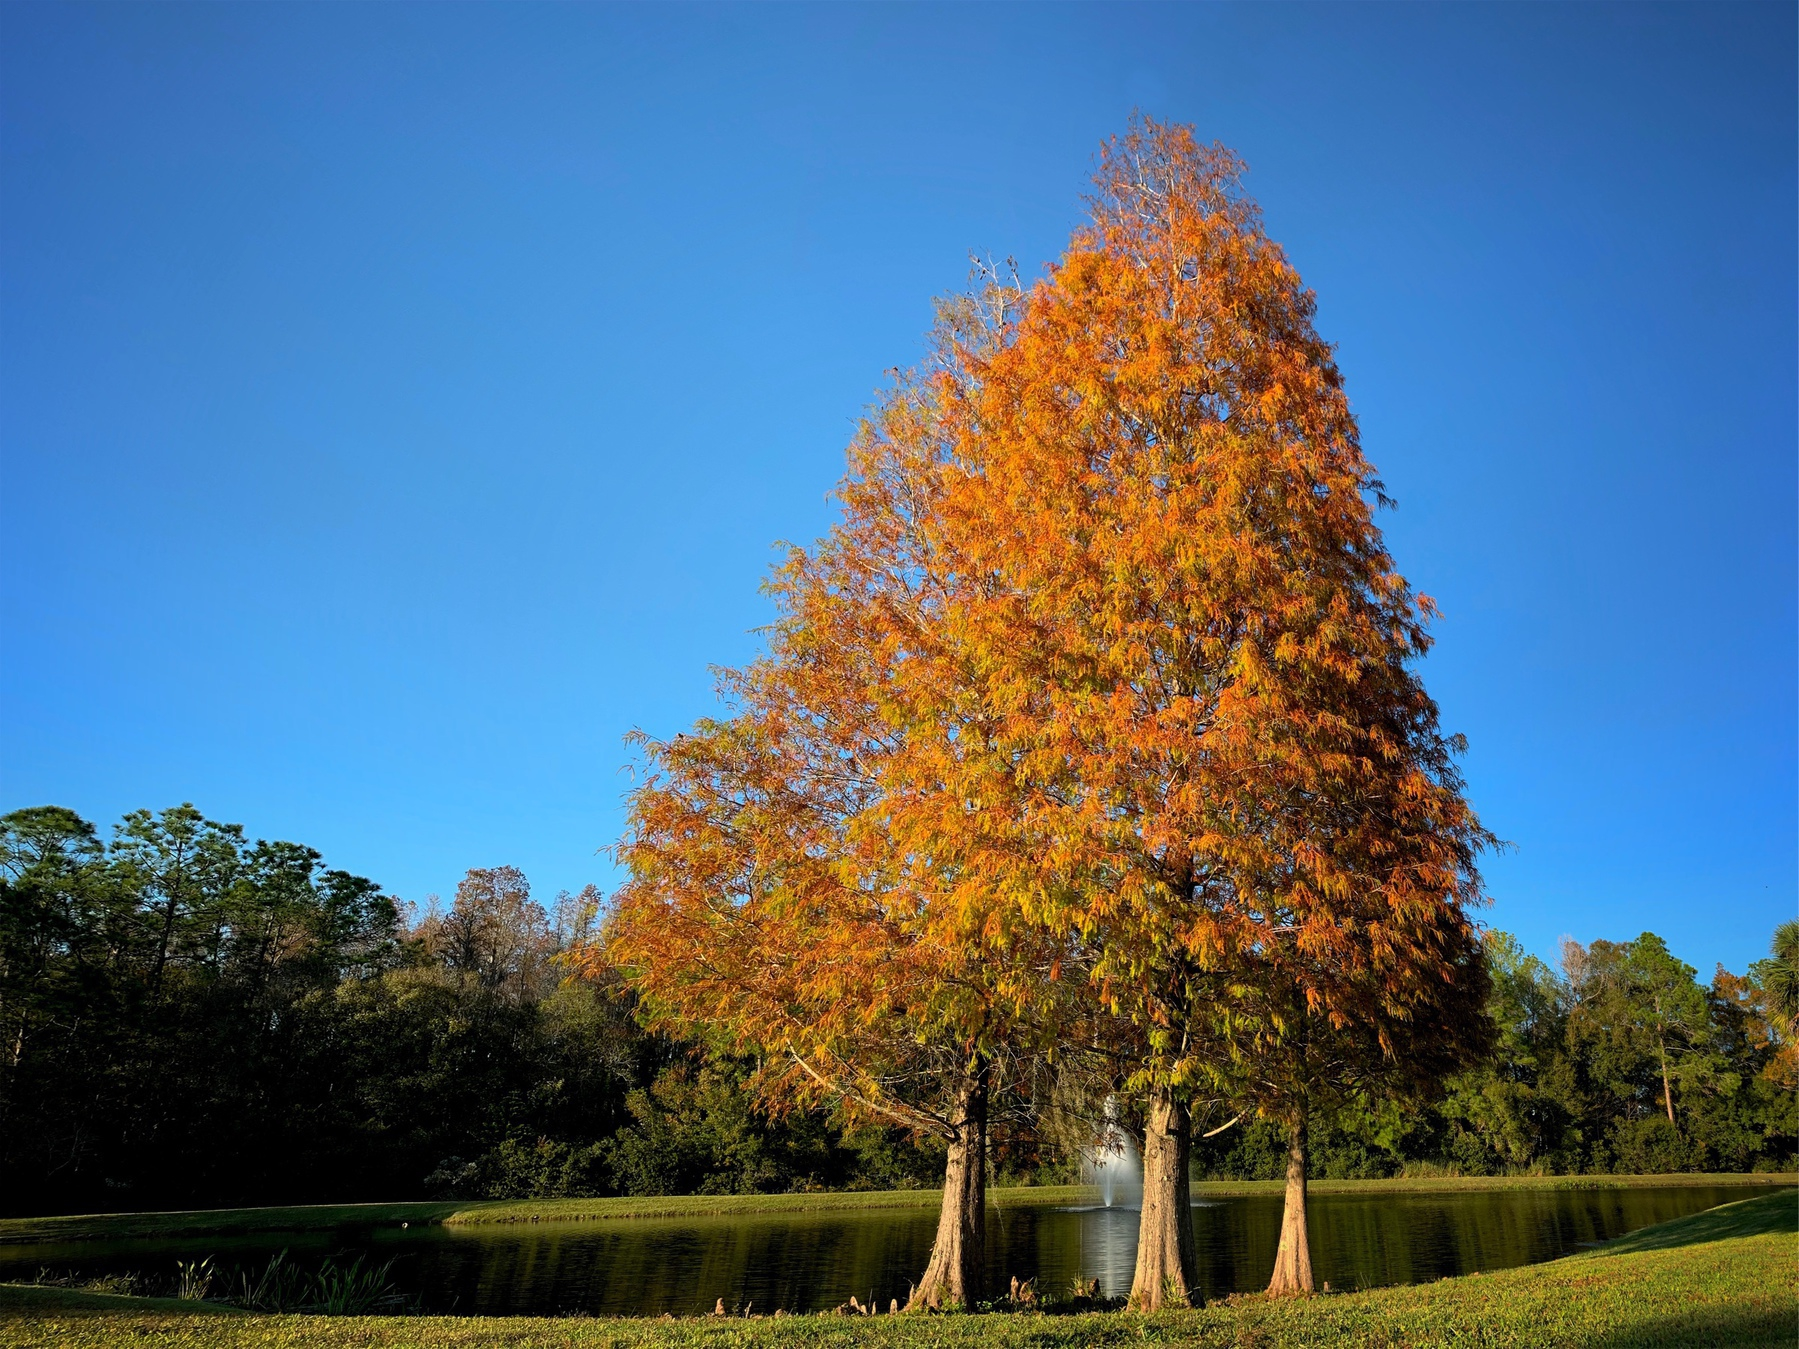 trees with orange leaves in front of small lake